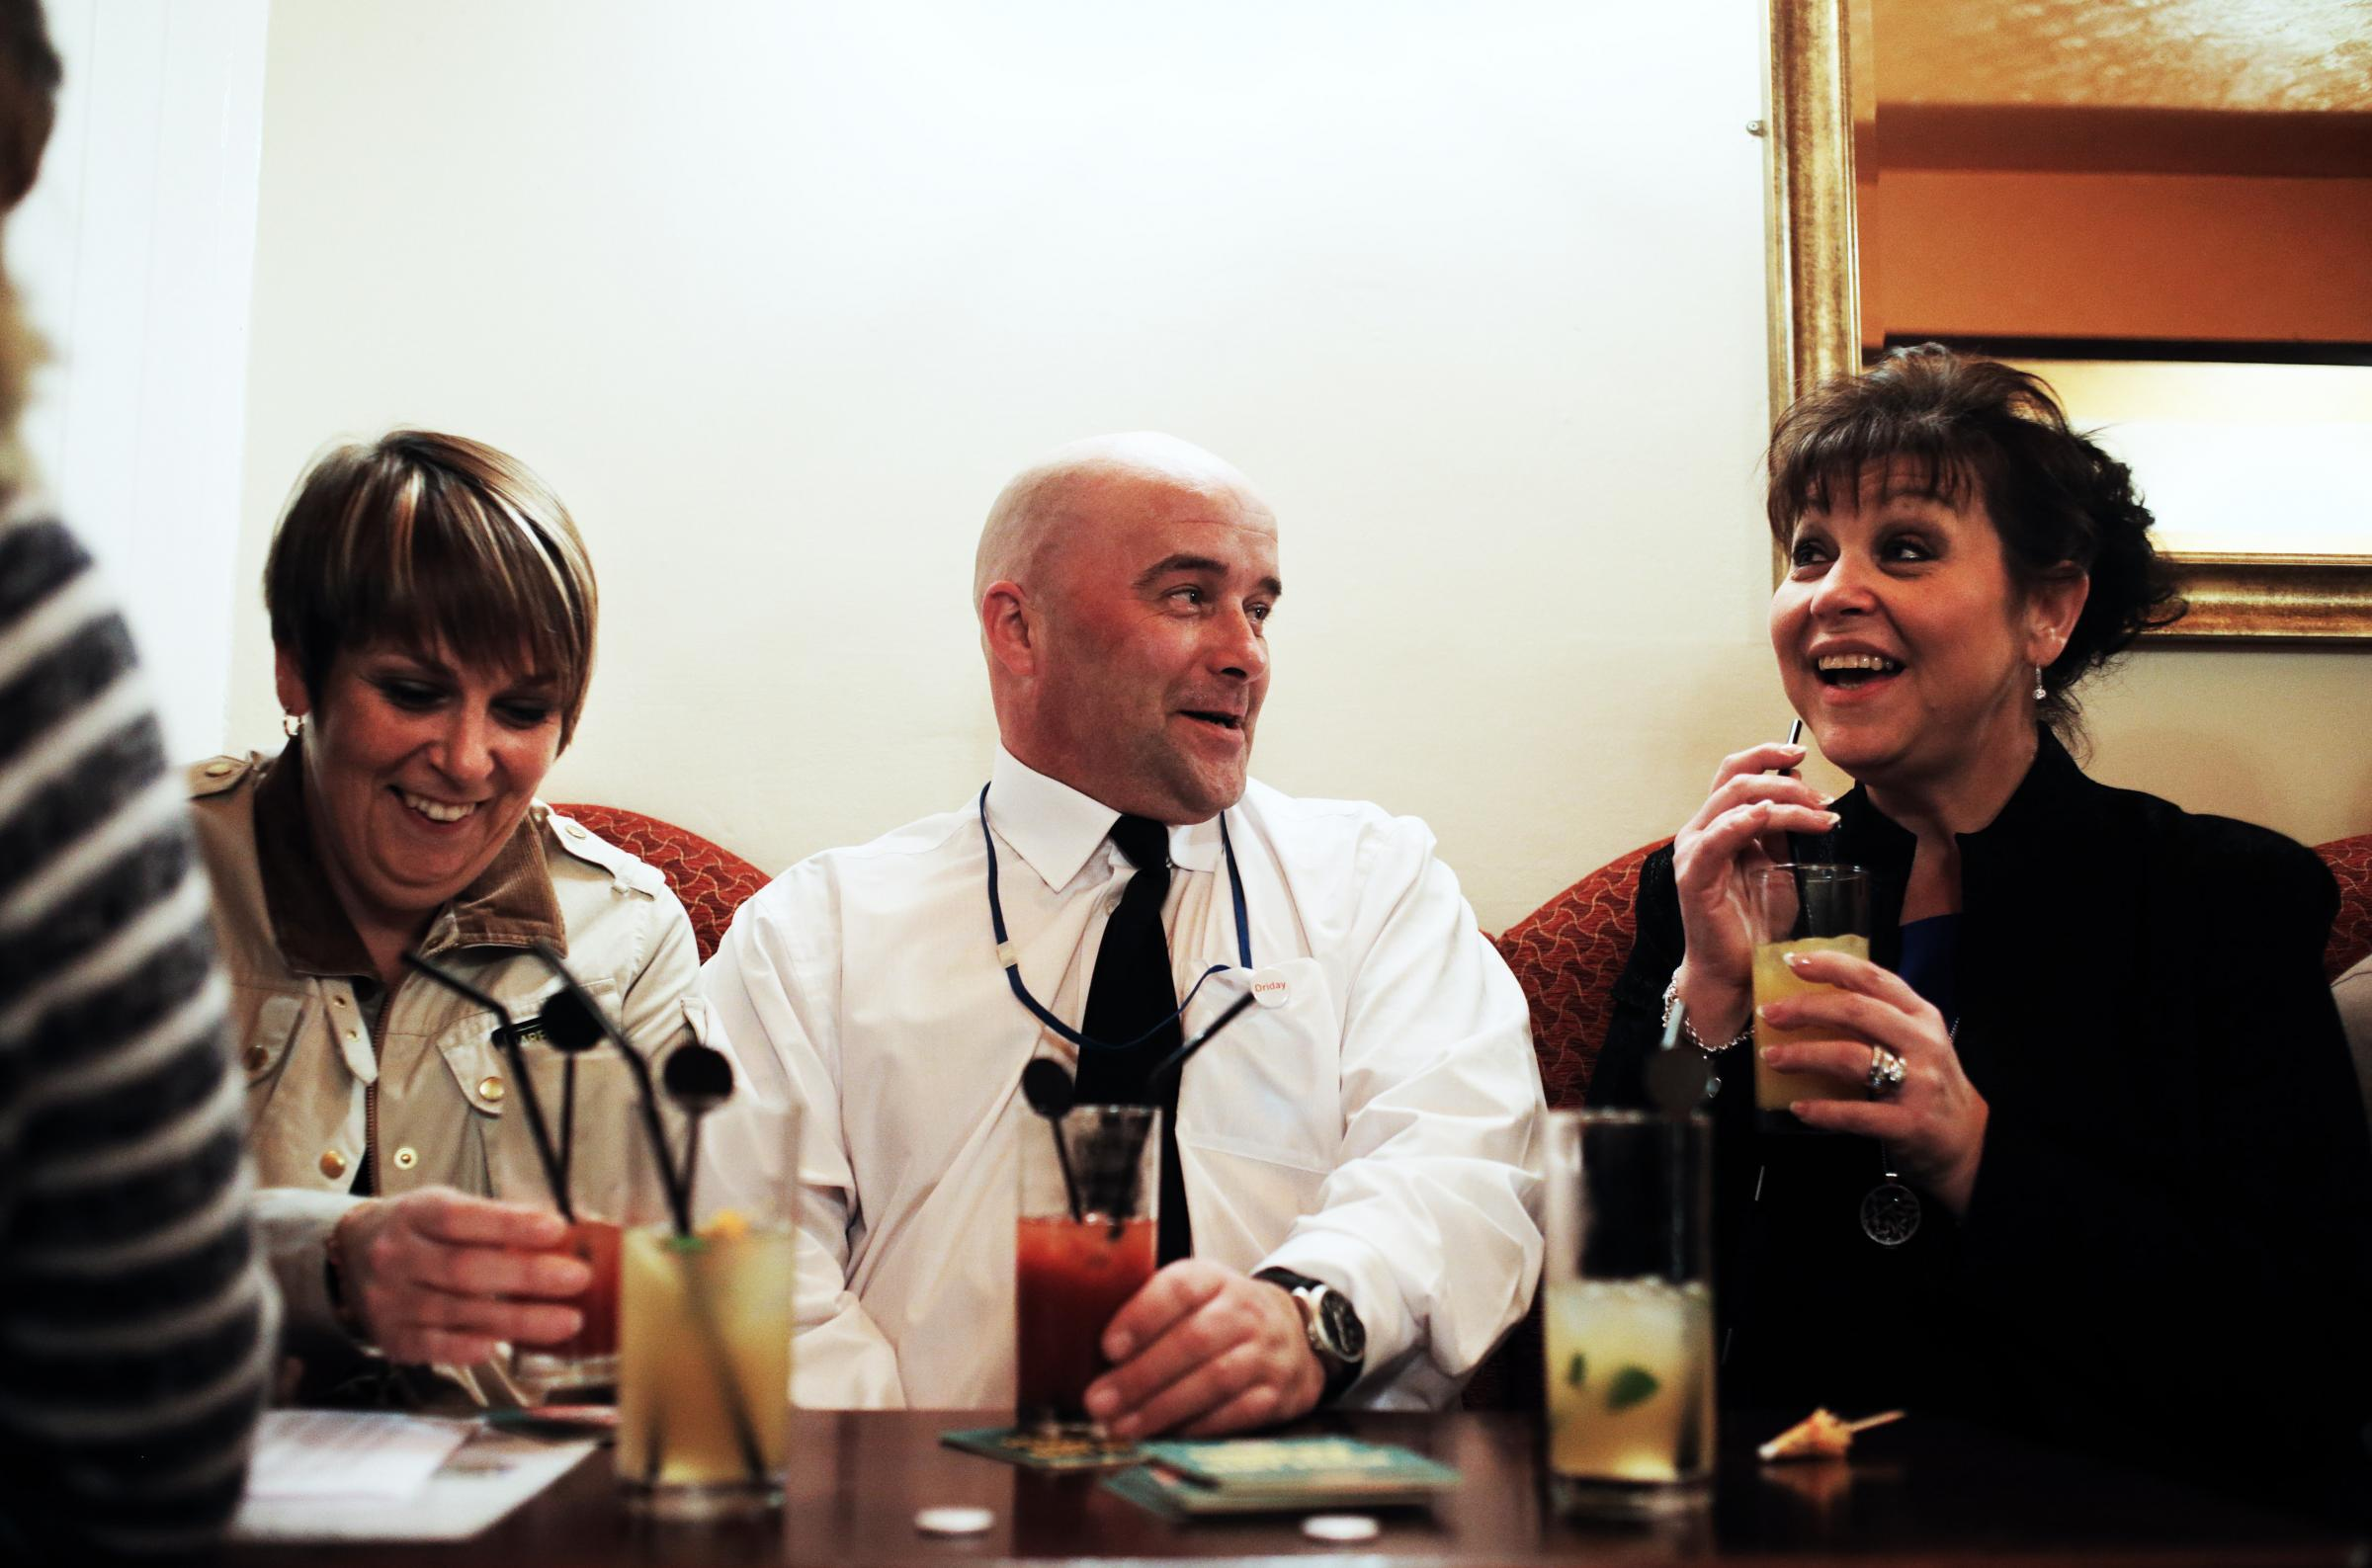 From left, Judith Wilkinson of Durham police, Vice Chair of Pub Watch Neil Hamilton and Julie Richings of Darlington council enjoy a non-alcoholic drink in the town's Three Crowns as part of a 'Dry January' pub crawl